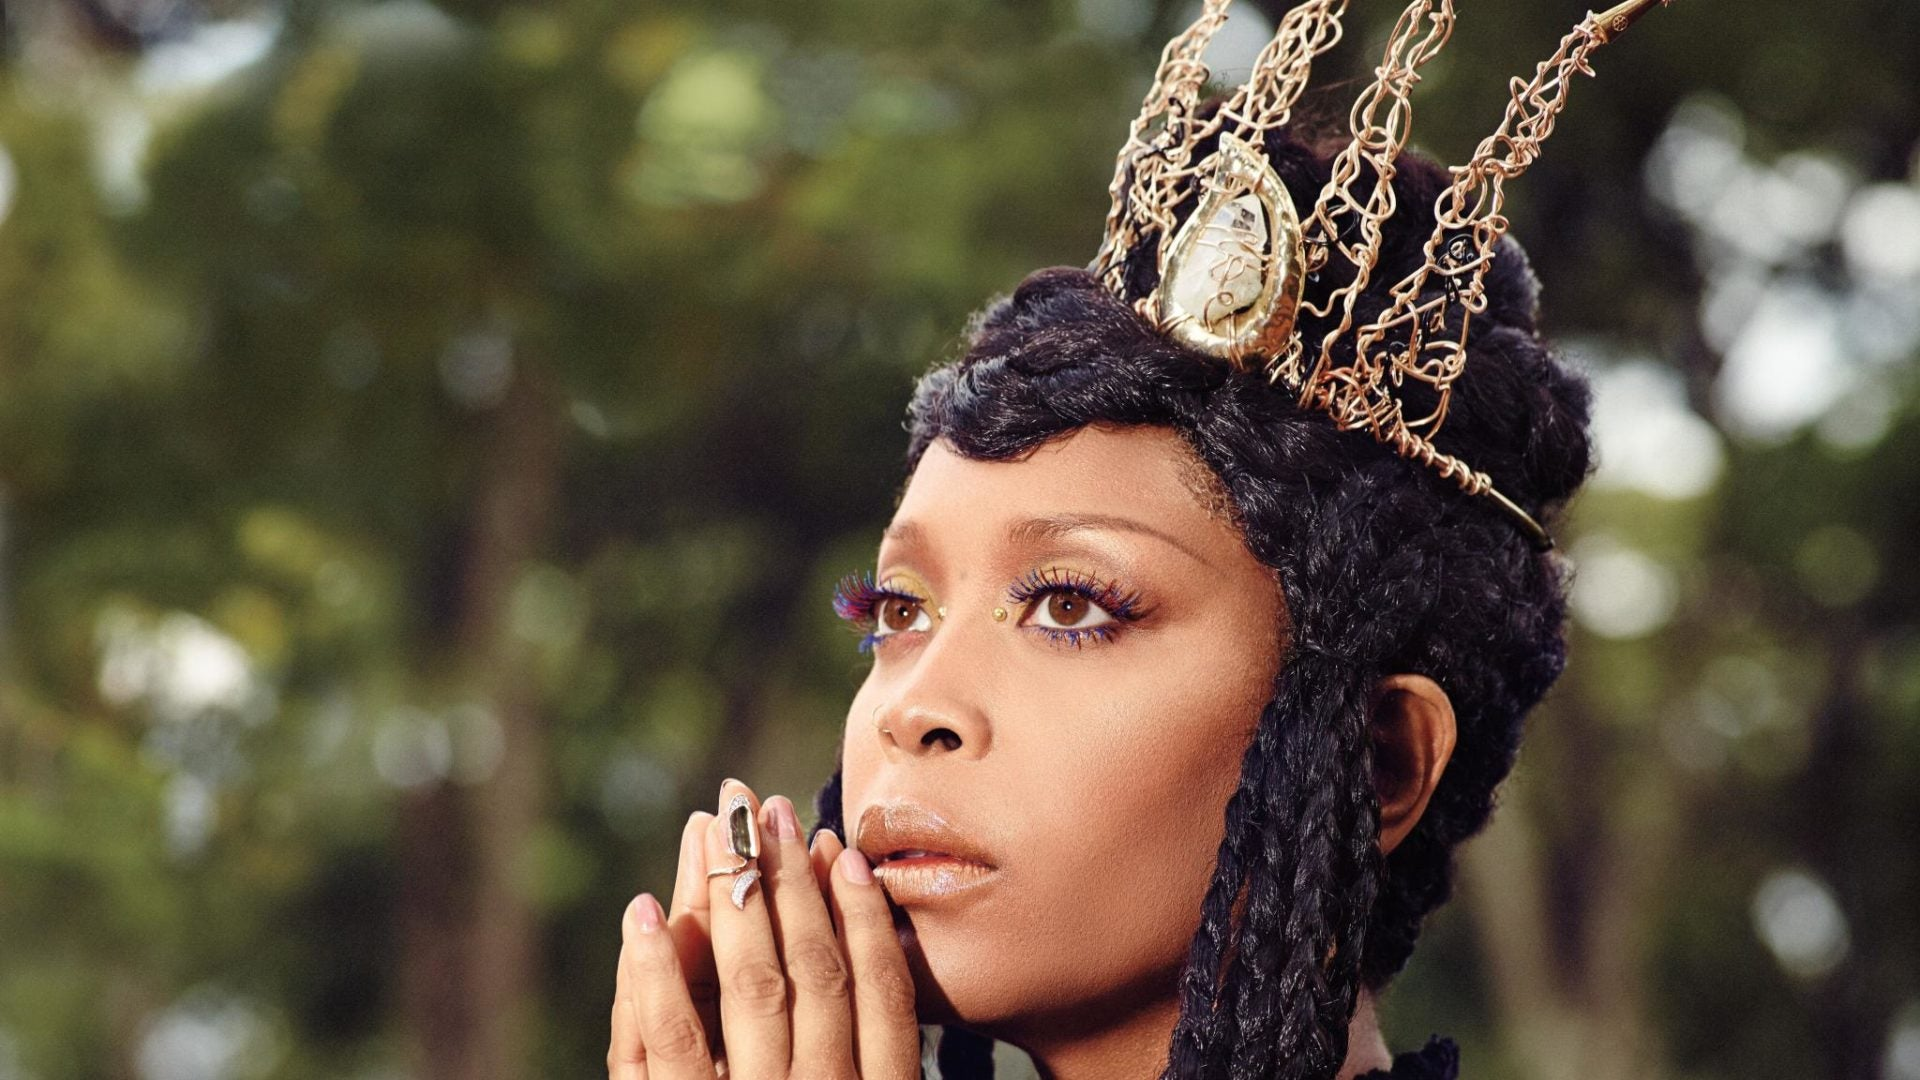 EXCLUSIVE: Erykah Badu Pens Essay on Making Time for Joy in Your Life